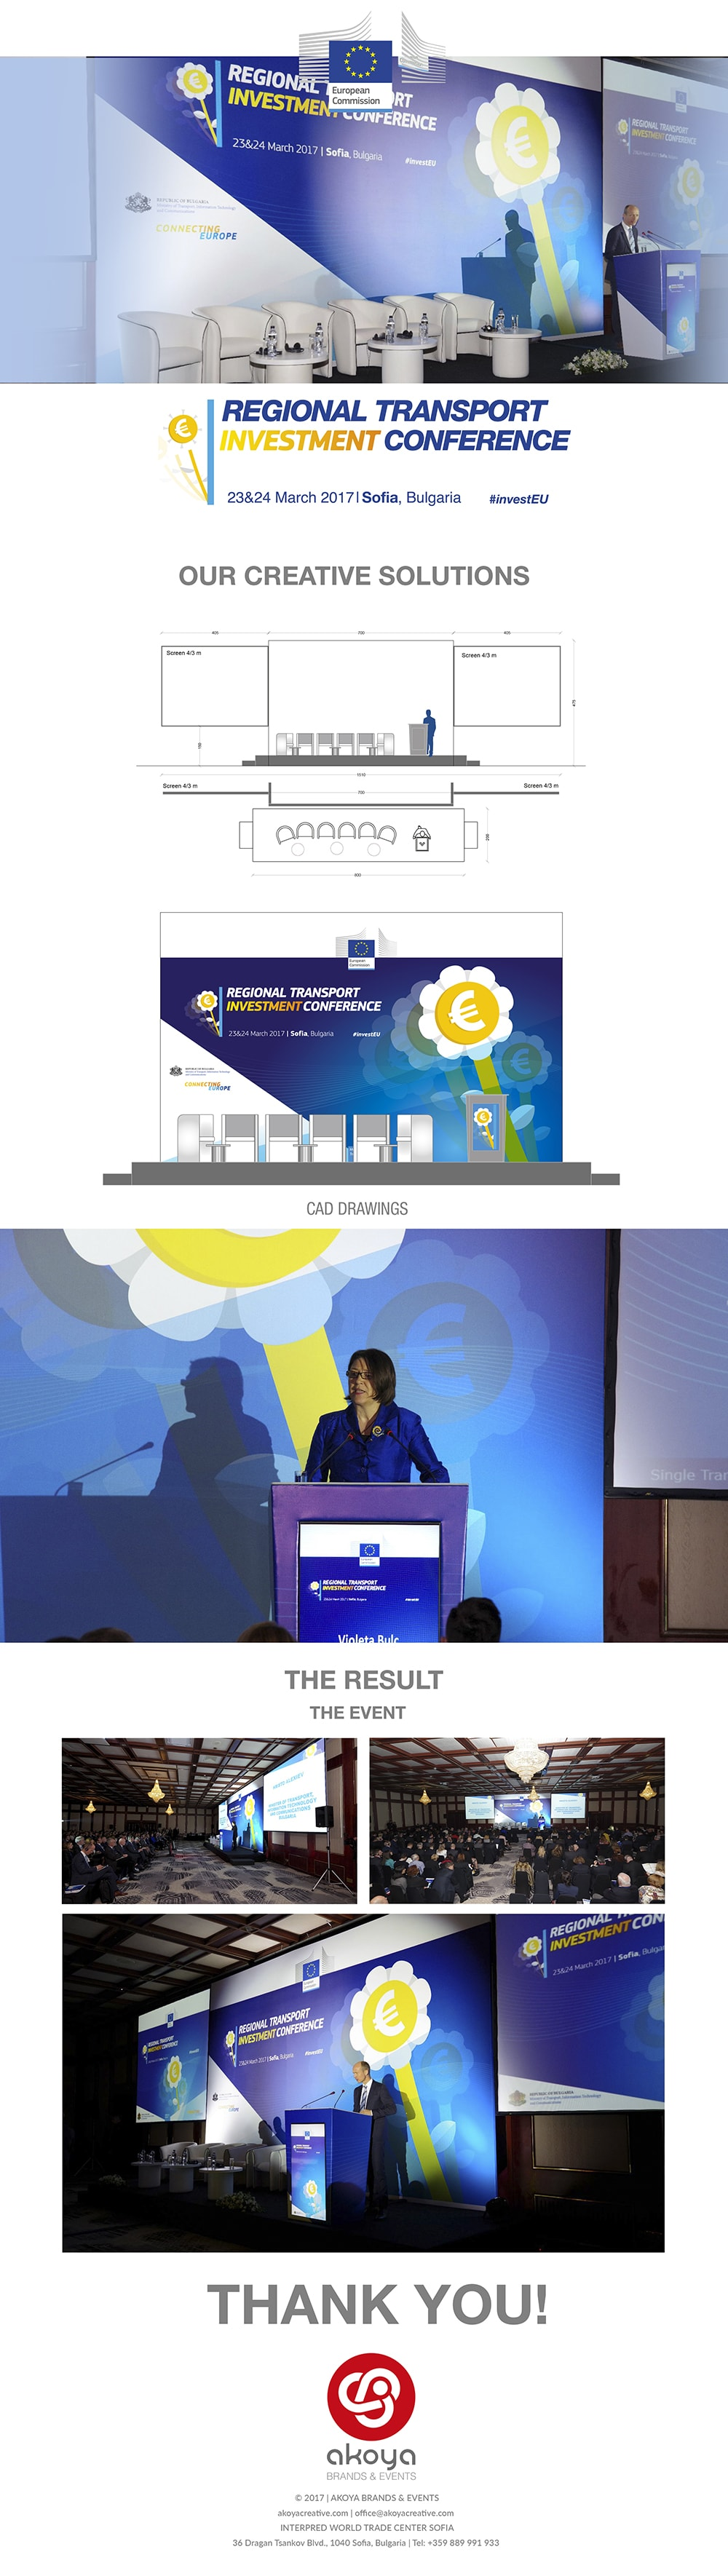 InvestEU Event Case Study